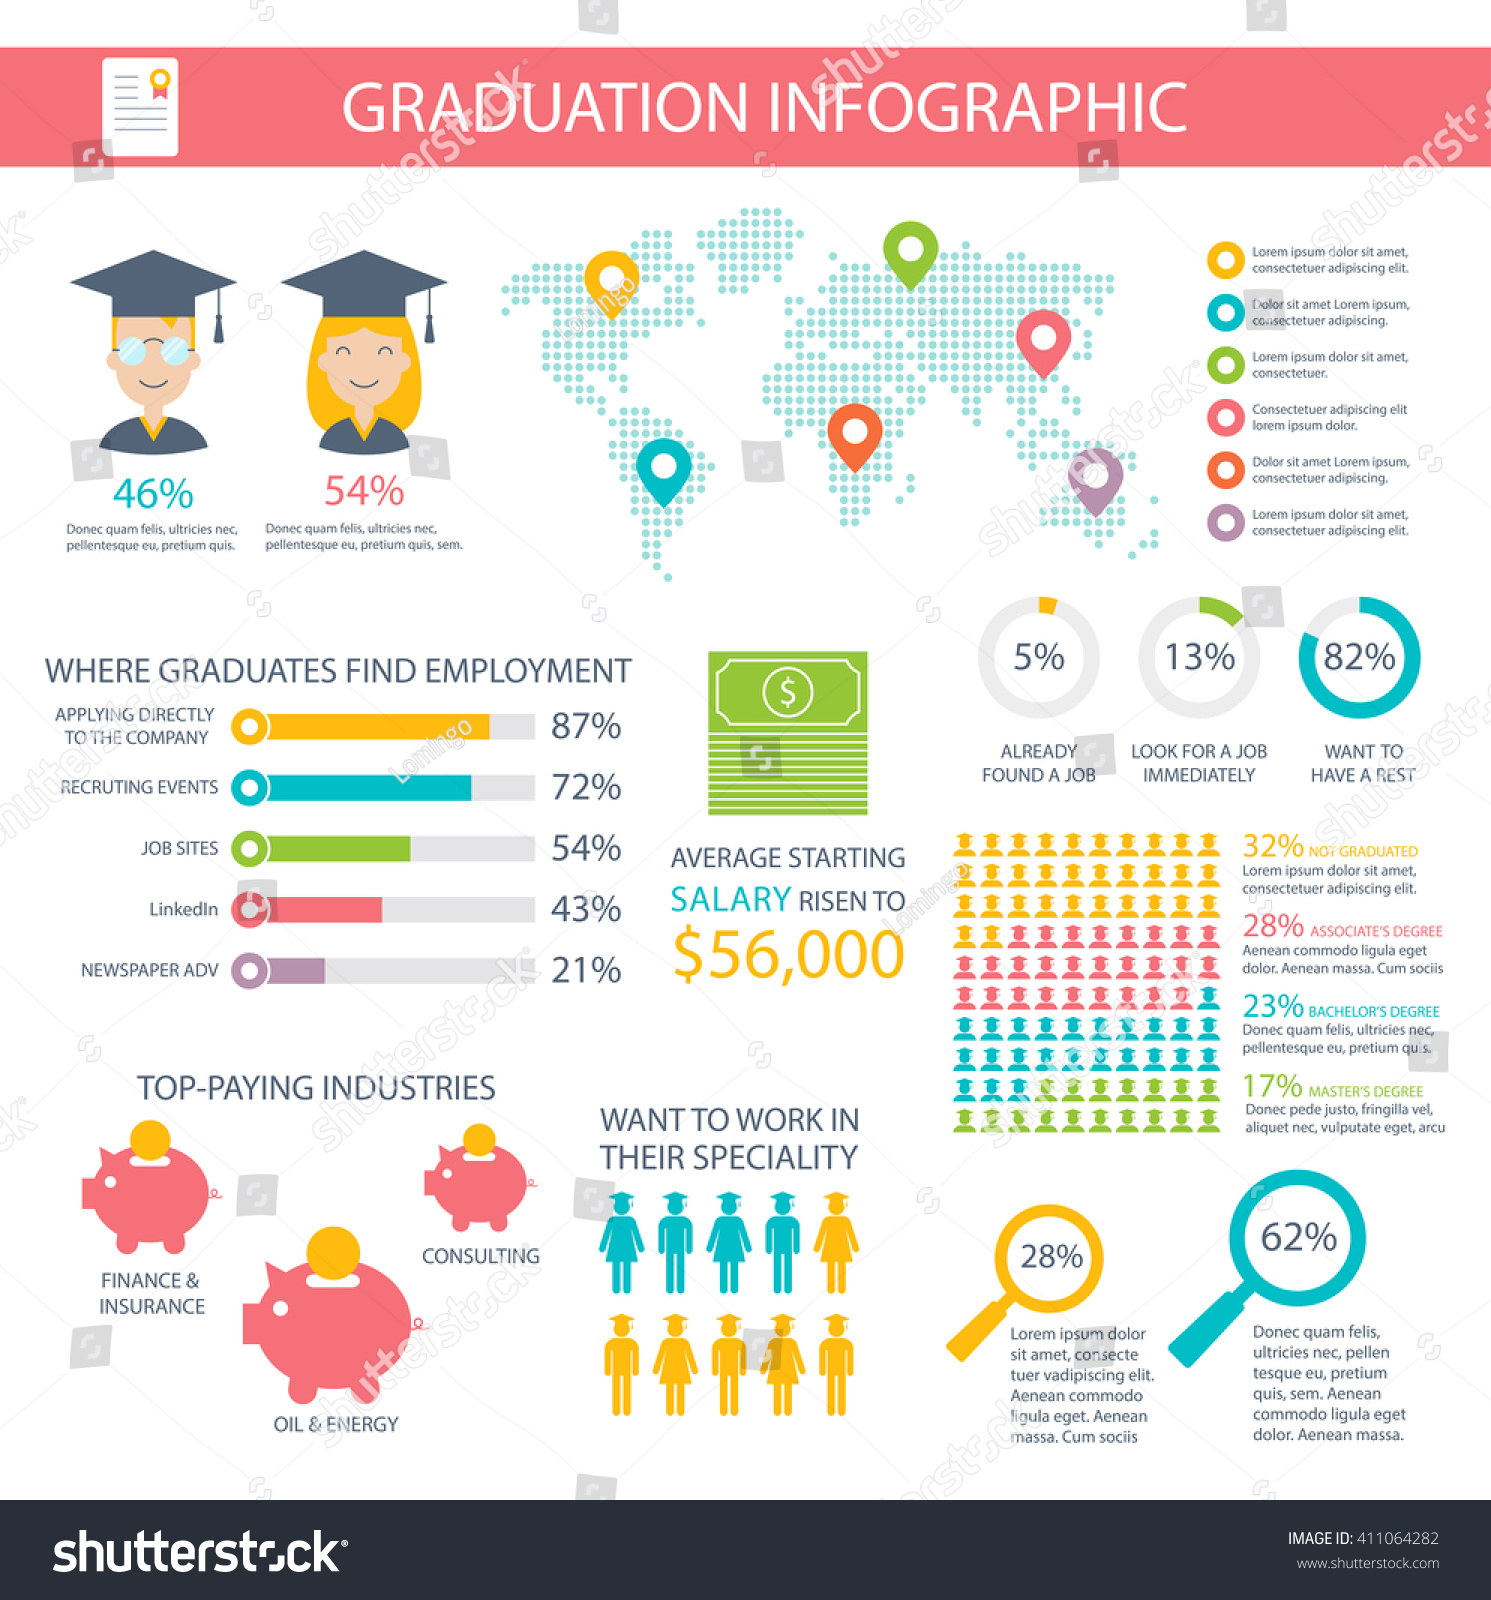 graduation infographic graduate job search statistic stock vector graduate job search statistic education information template collection education diagrams